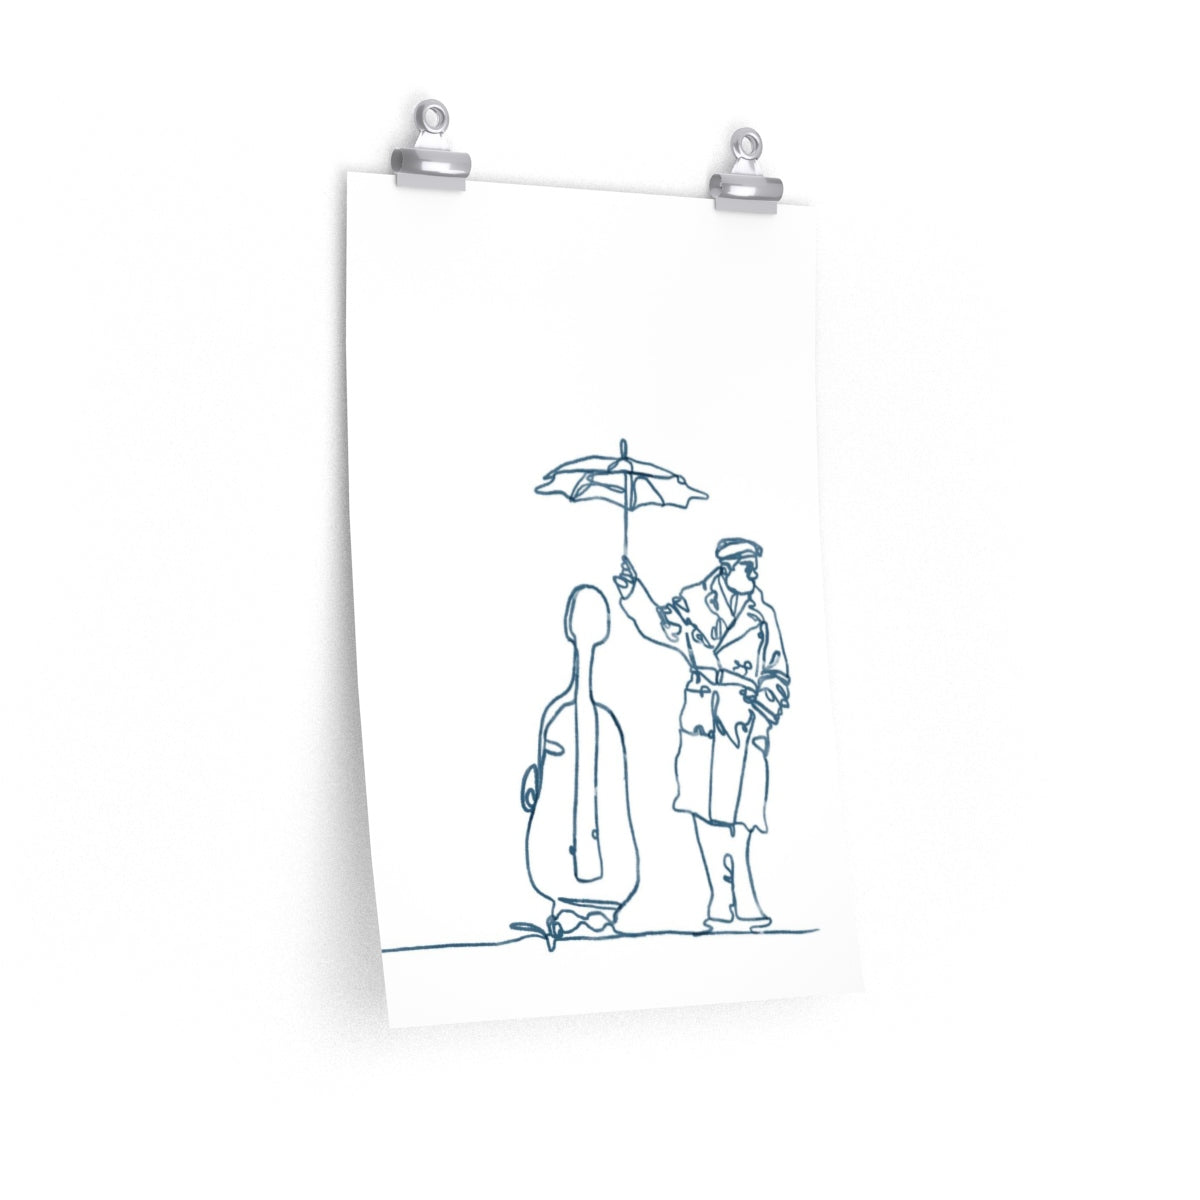 Man Holding An Umbrella For His Cello | Print | Poster | Premium Matte vertical posters - EGLOOP